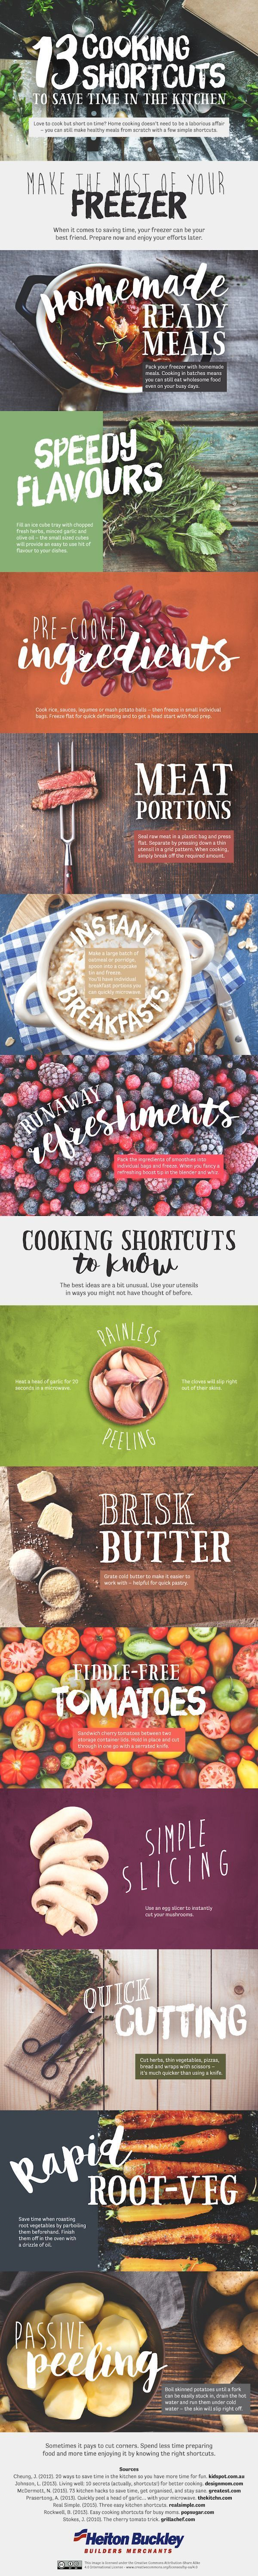 cooking Shortcuts infographic